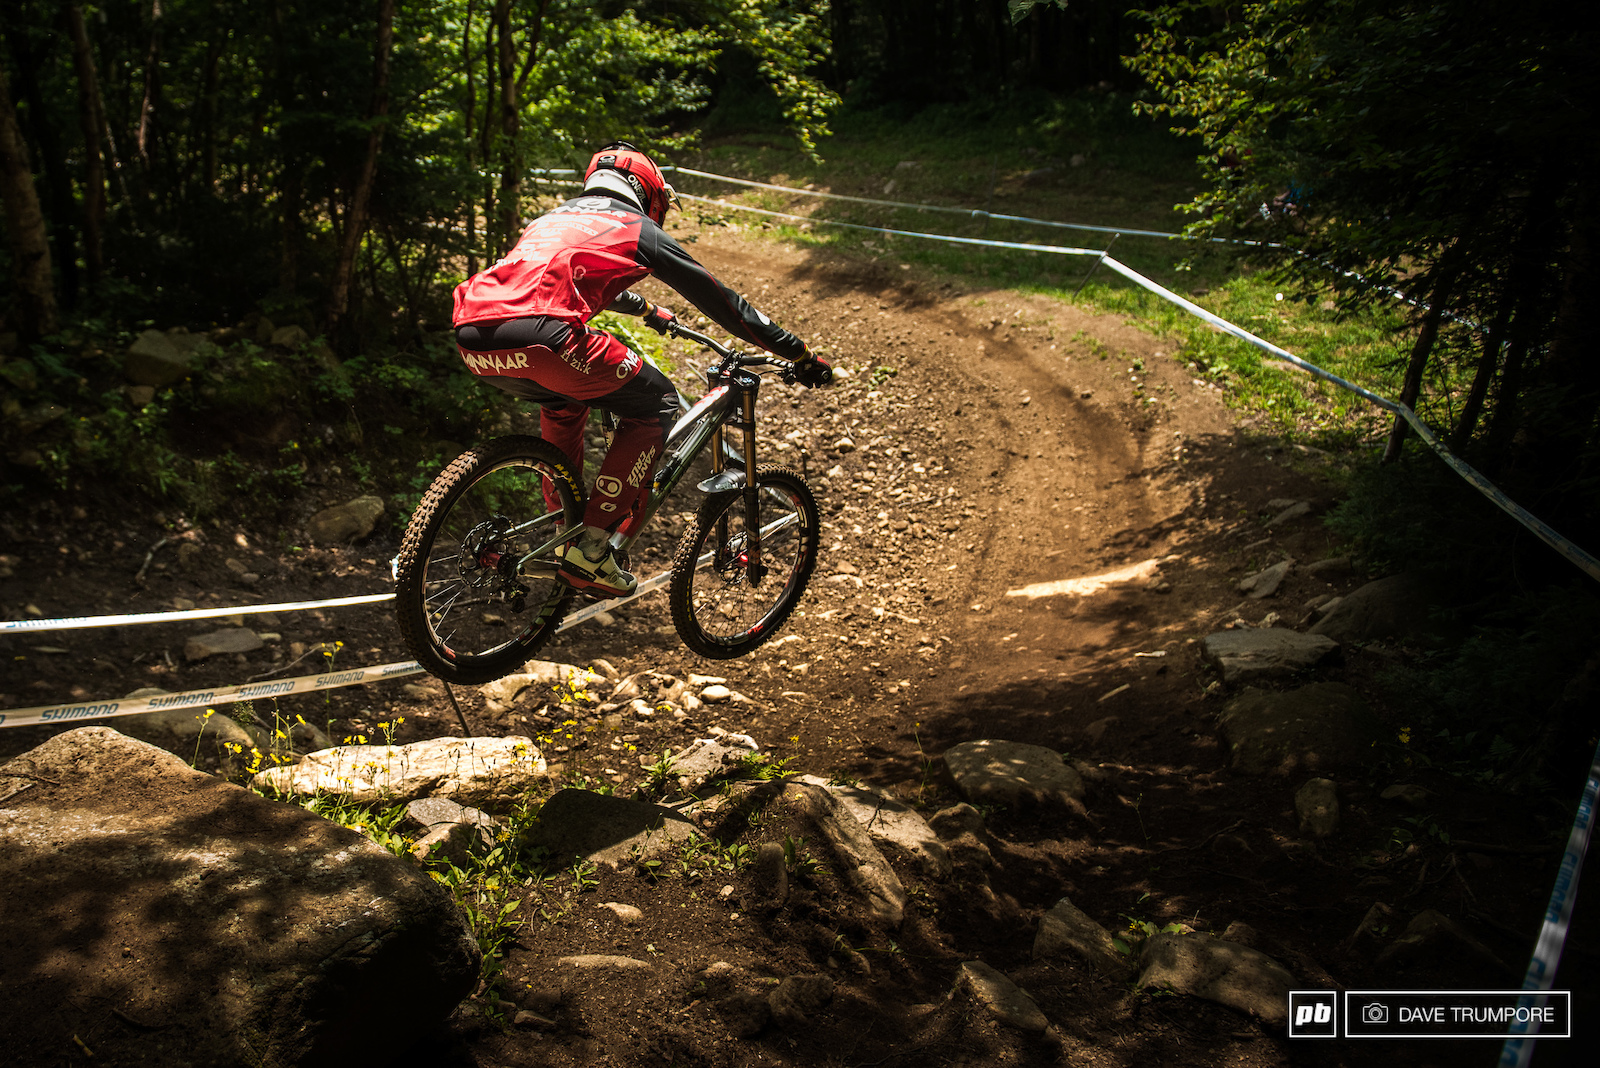 World Cup series leader Greg Minnaar sends in into the fastest part of the track.